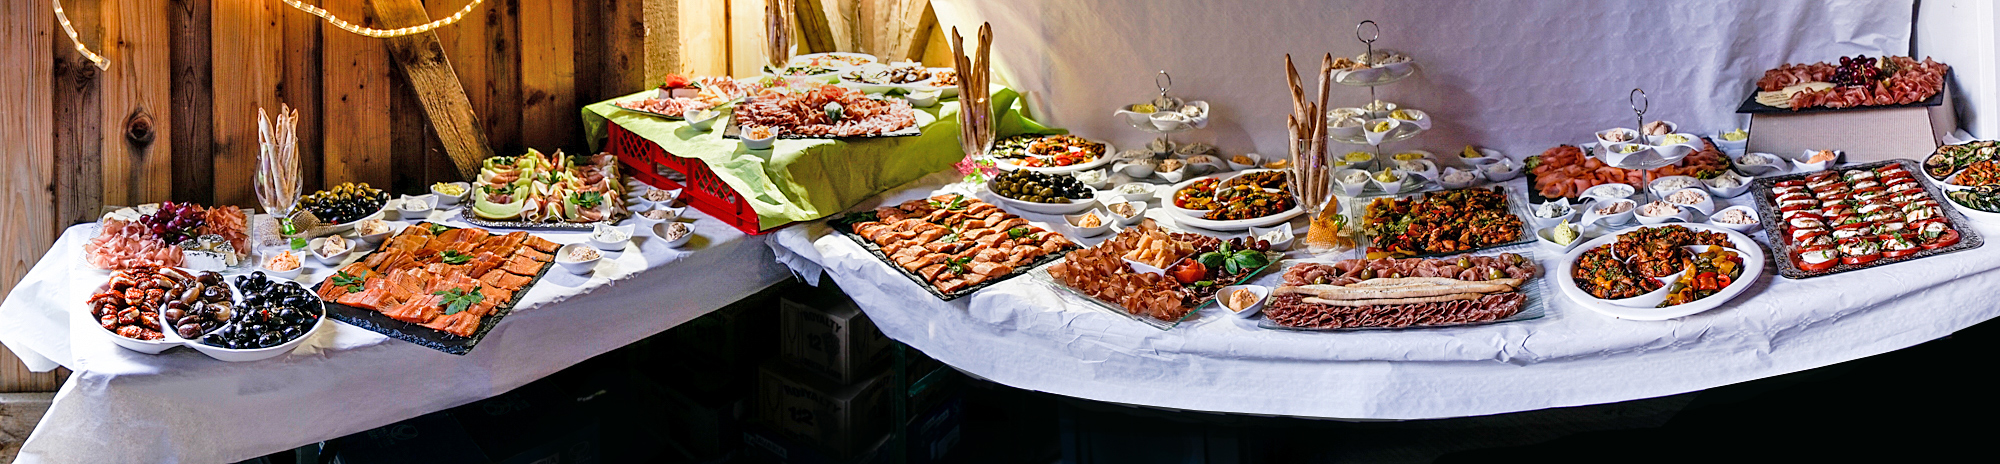 Geniesser Penzberg Catering Partyservice